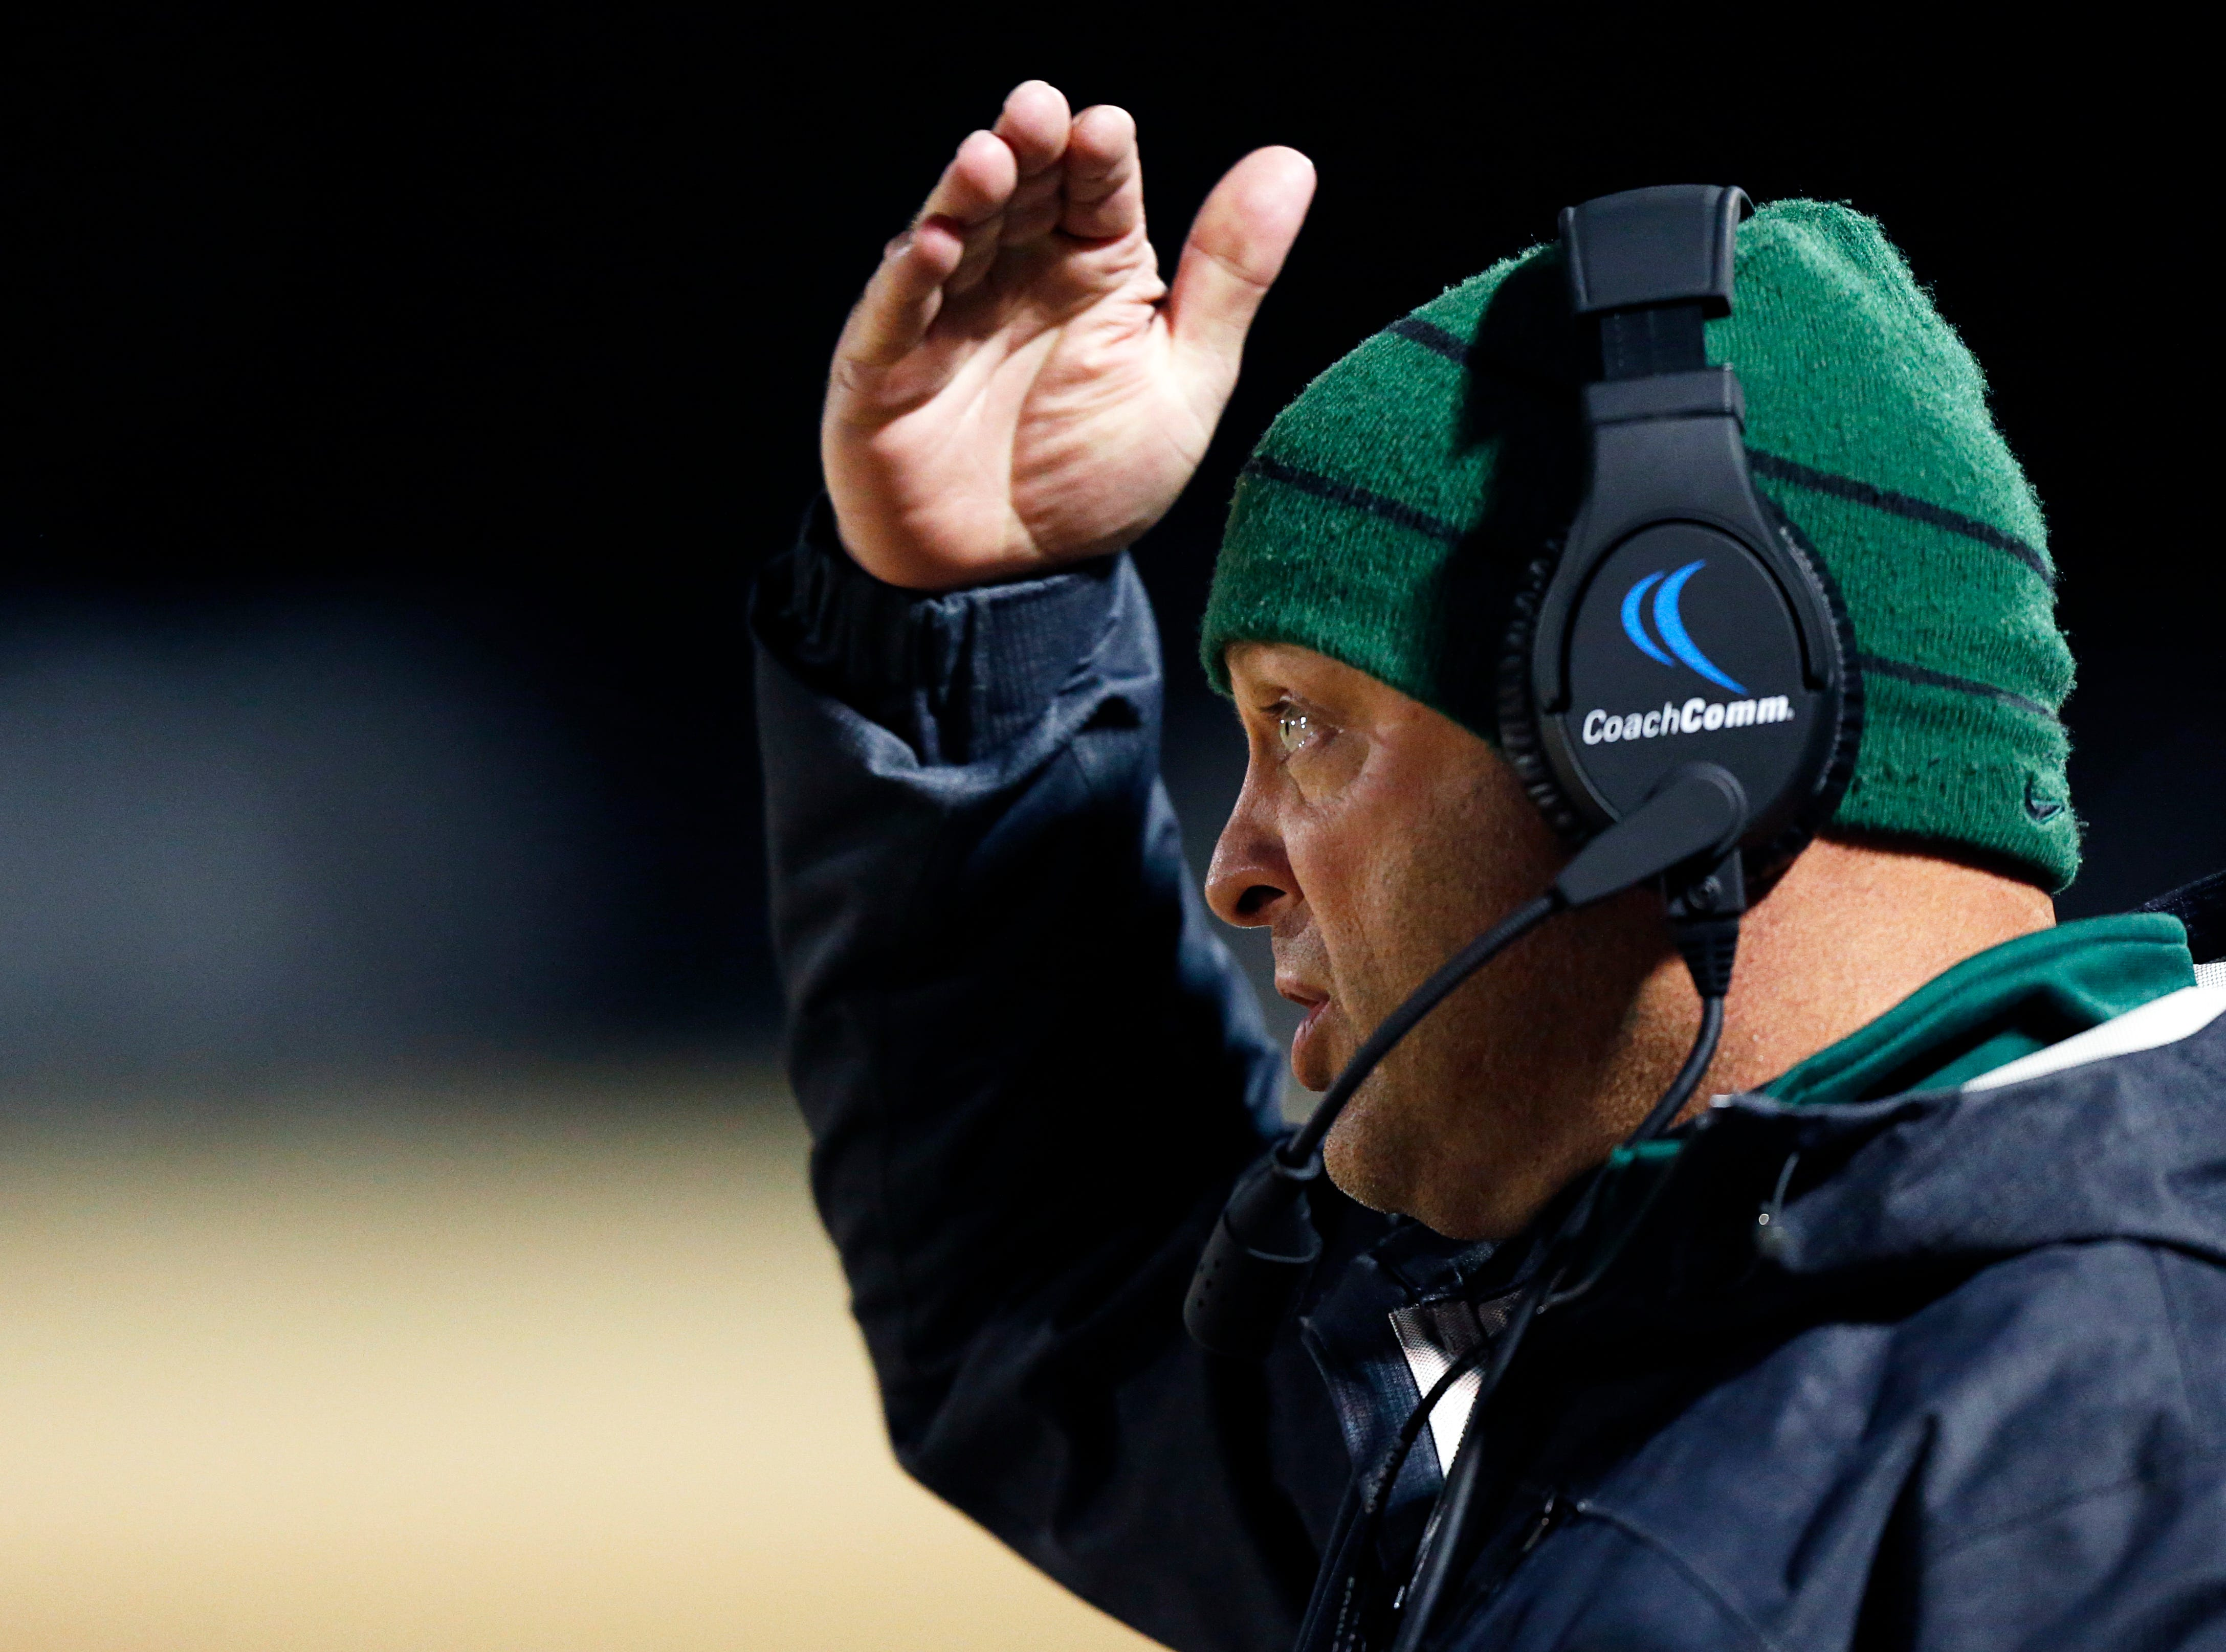 Greeneville head coach Caine Ballard signals a play during their game against Maplewood Friday, Nov. 23, 2018, in Nashville, TN.